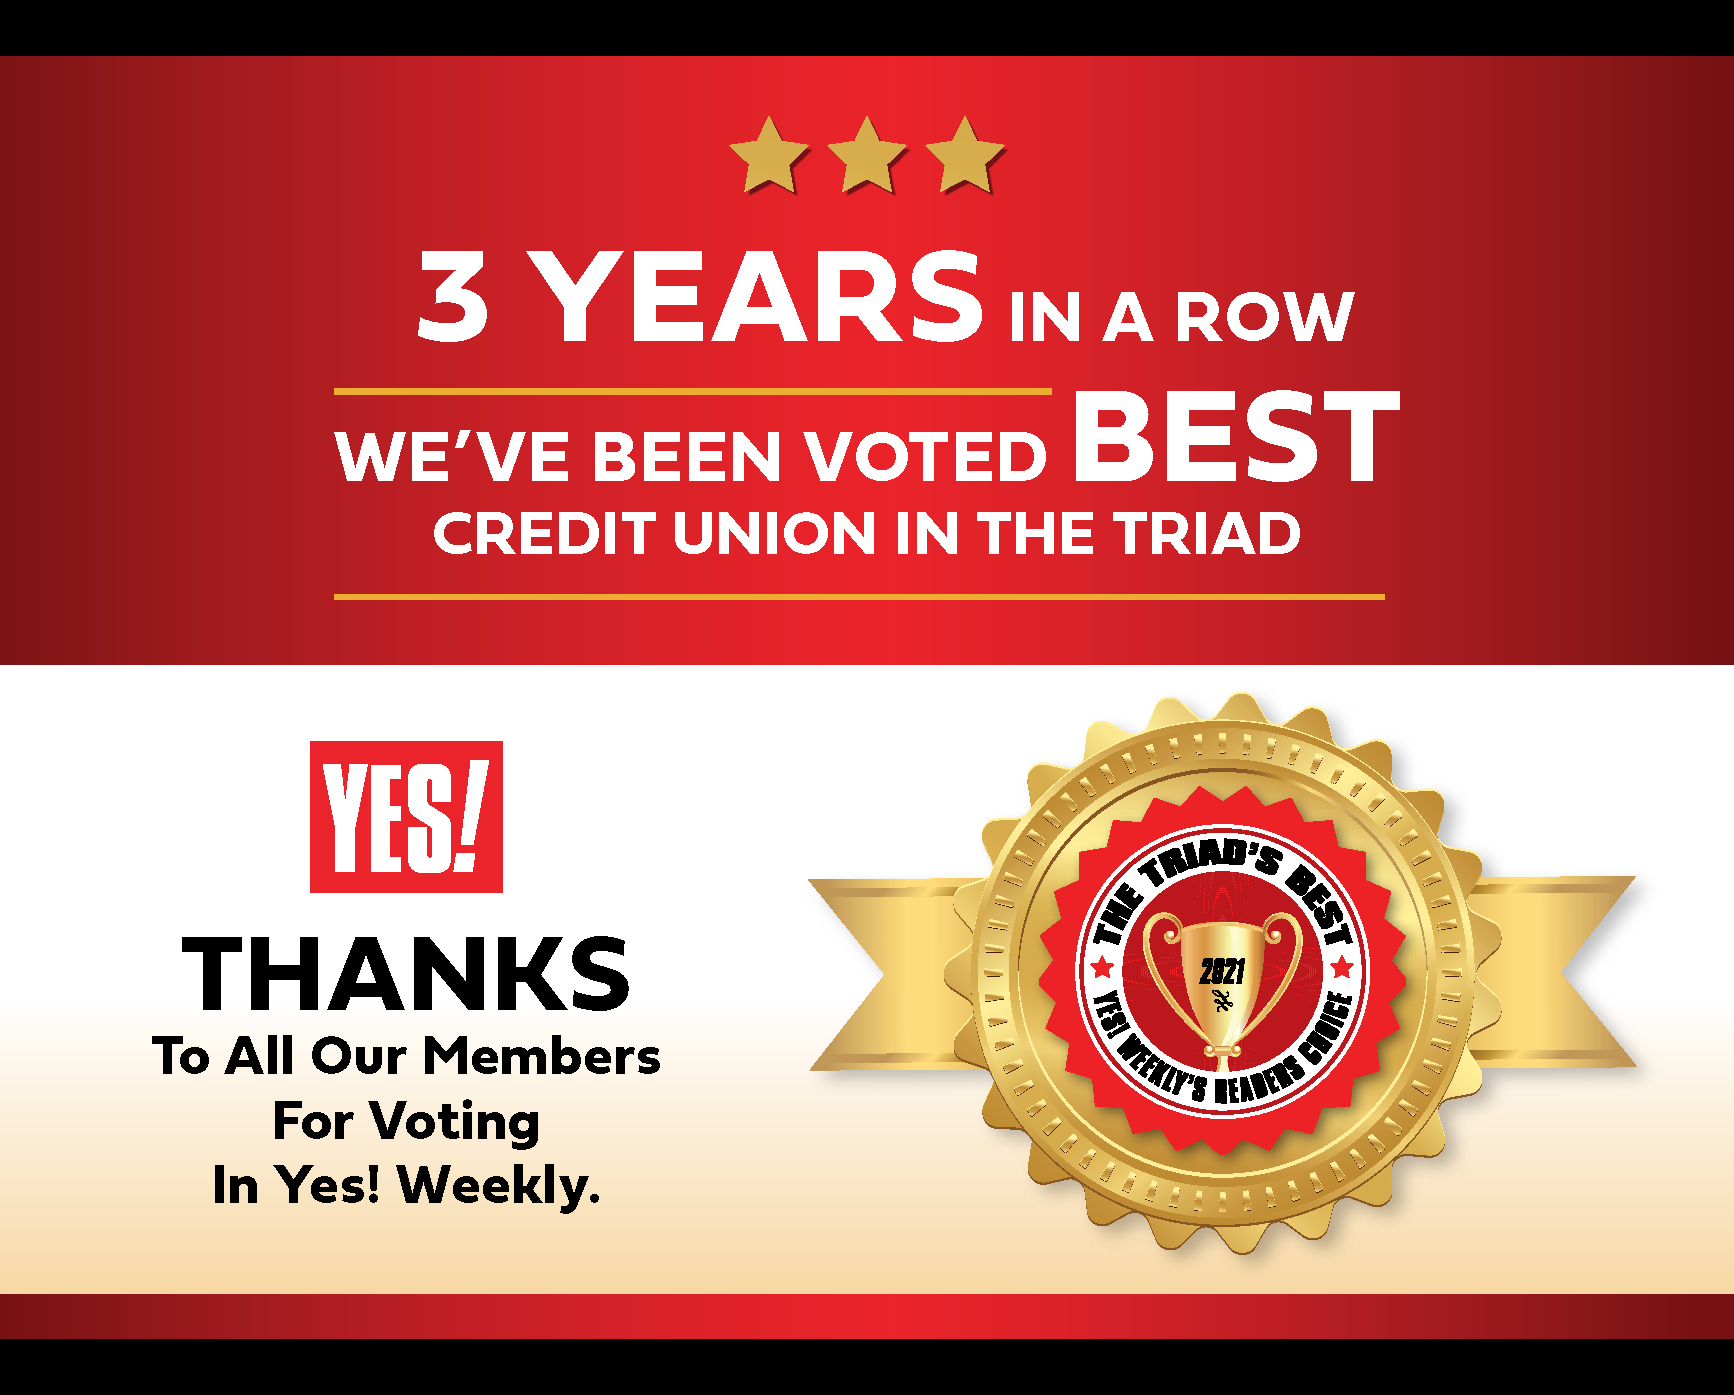 Thanks To All Our Members For Voting in Yes! Weekly to make us best credit union in the Triad 3 years in a row!